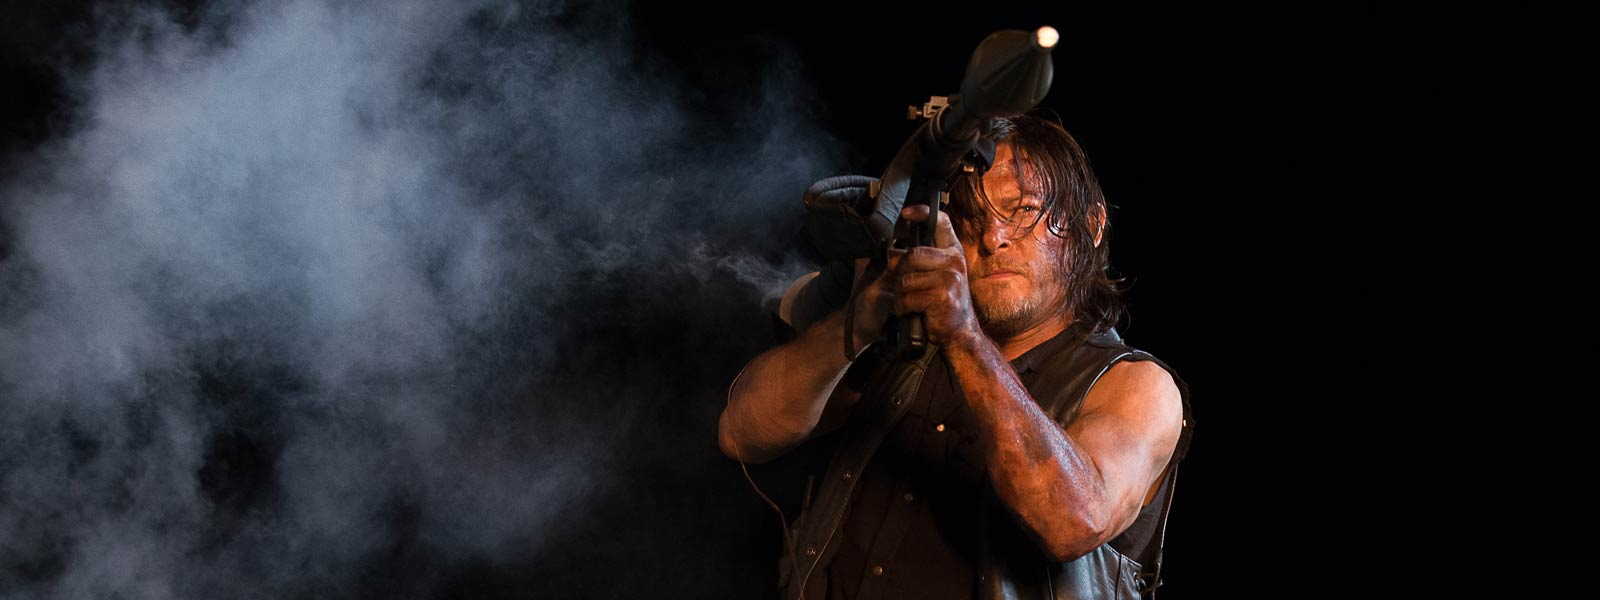 the-walking-dead-episode-609-daryl-reedus-post-800×600